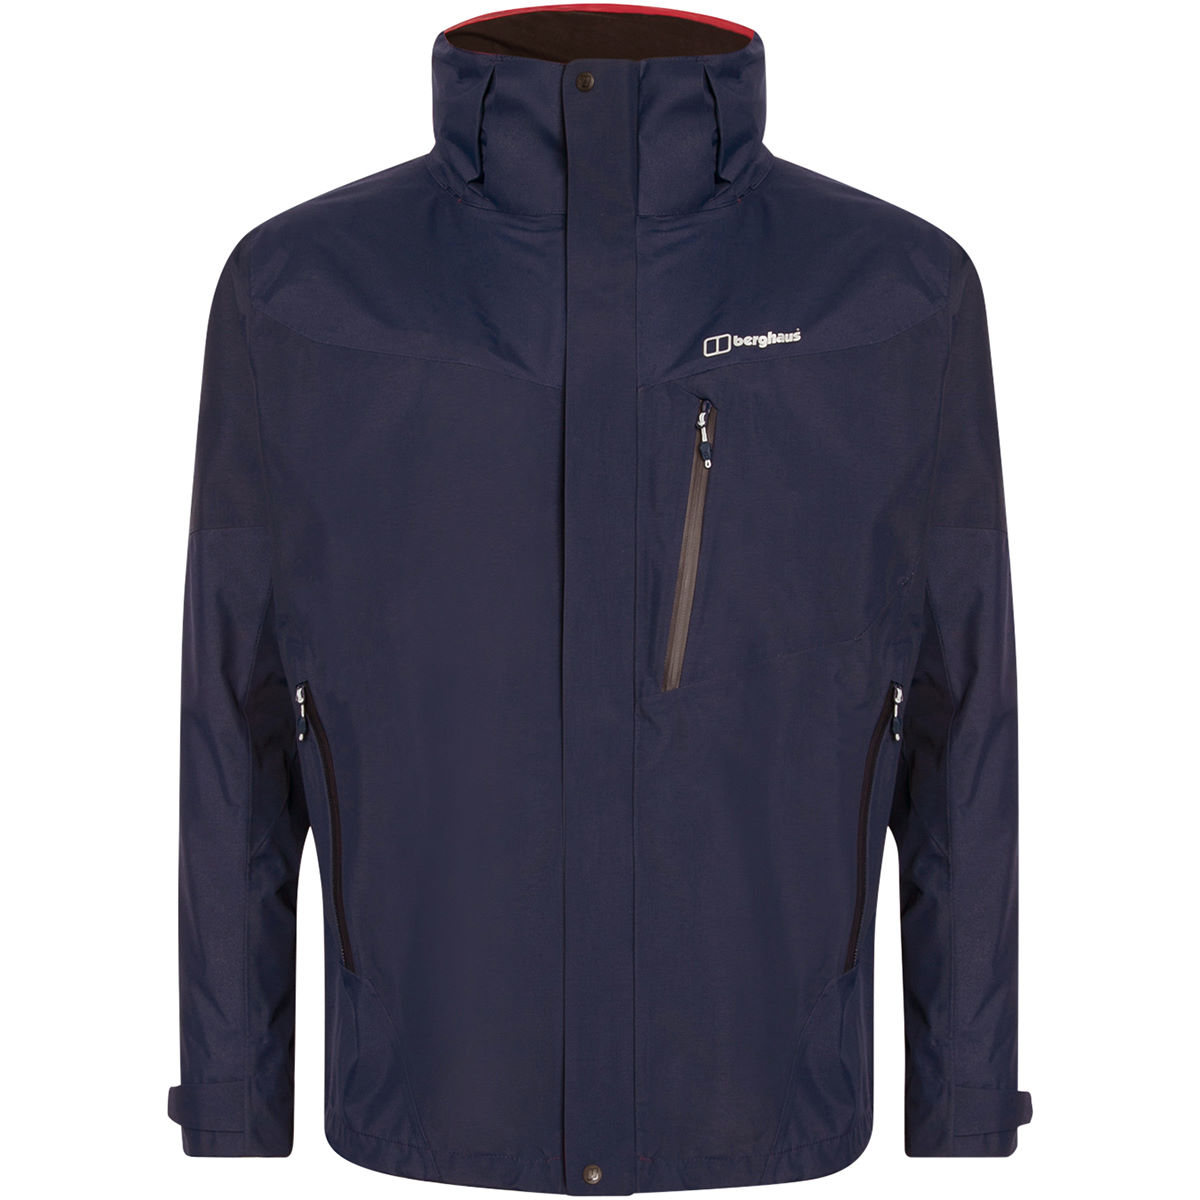 Berghaus Berghaus Arran Waterproof Jacket   Jackets